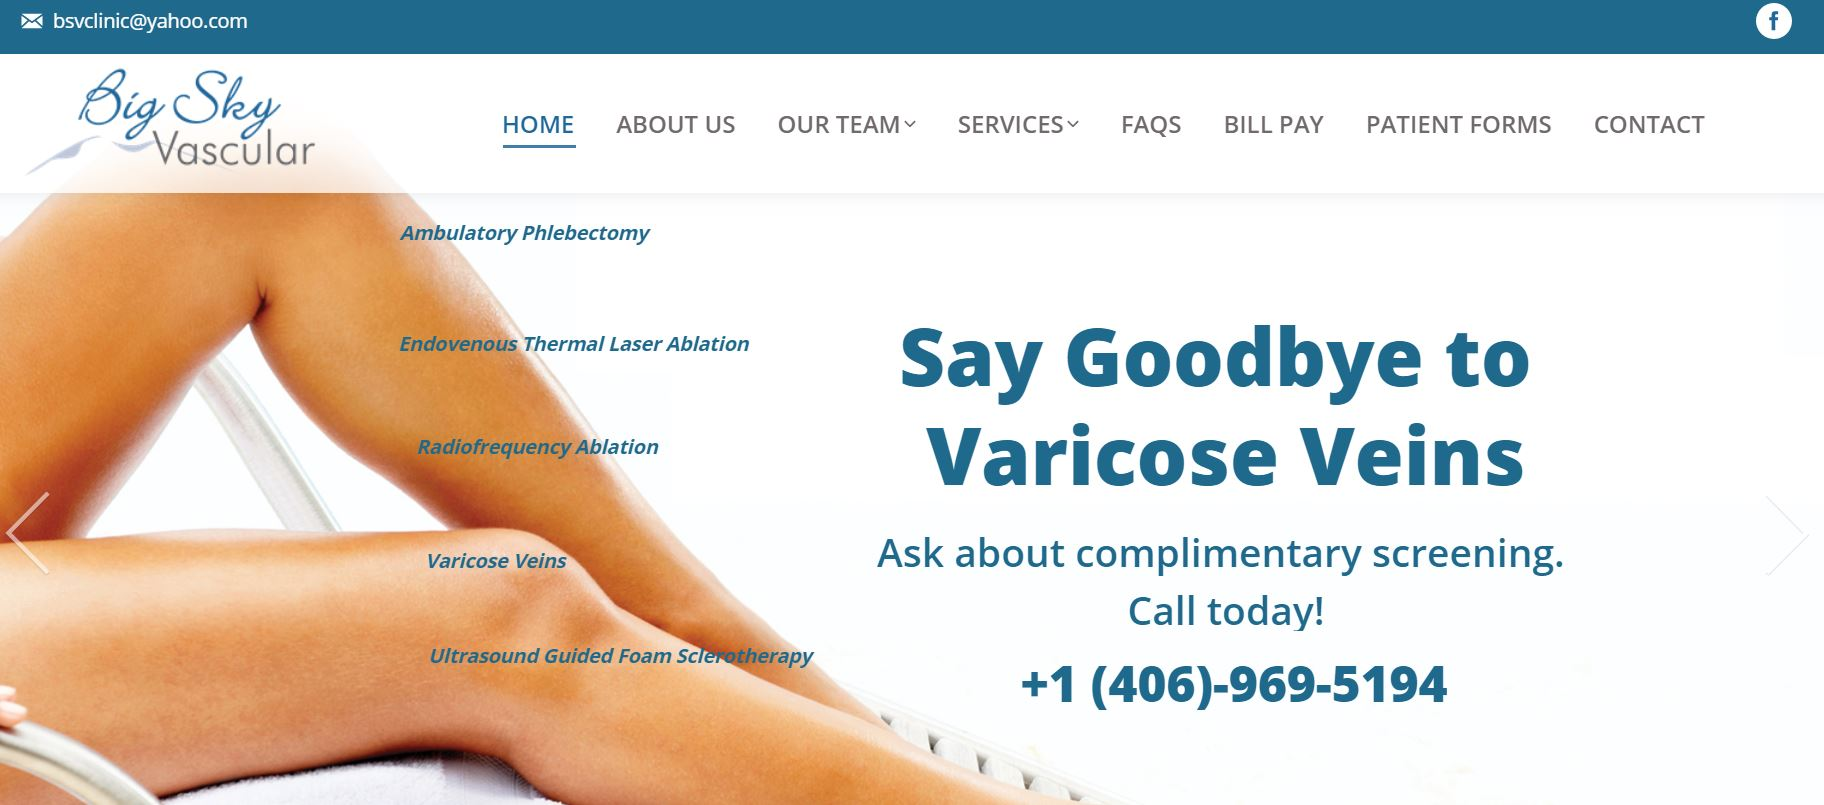 Big Sky Vascular website design by SkyPoint Studios